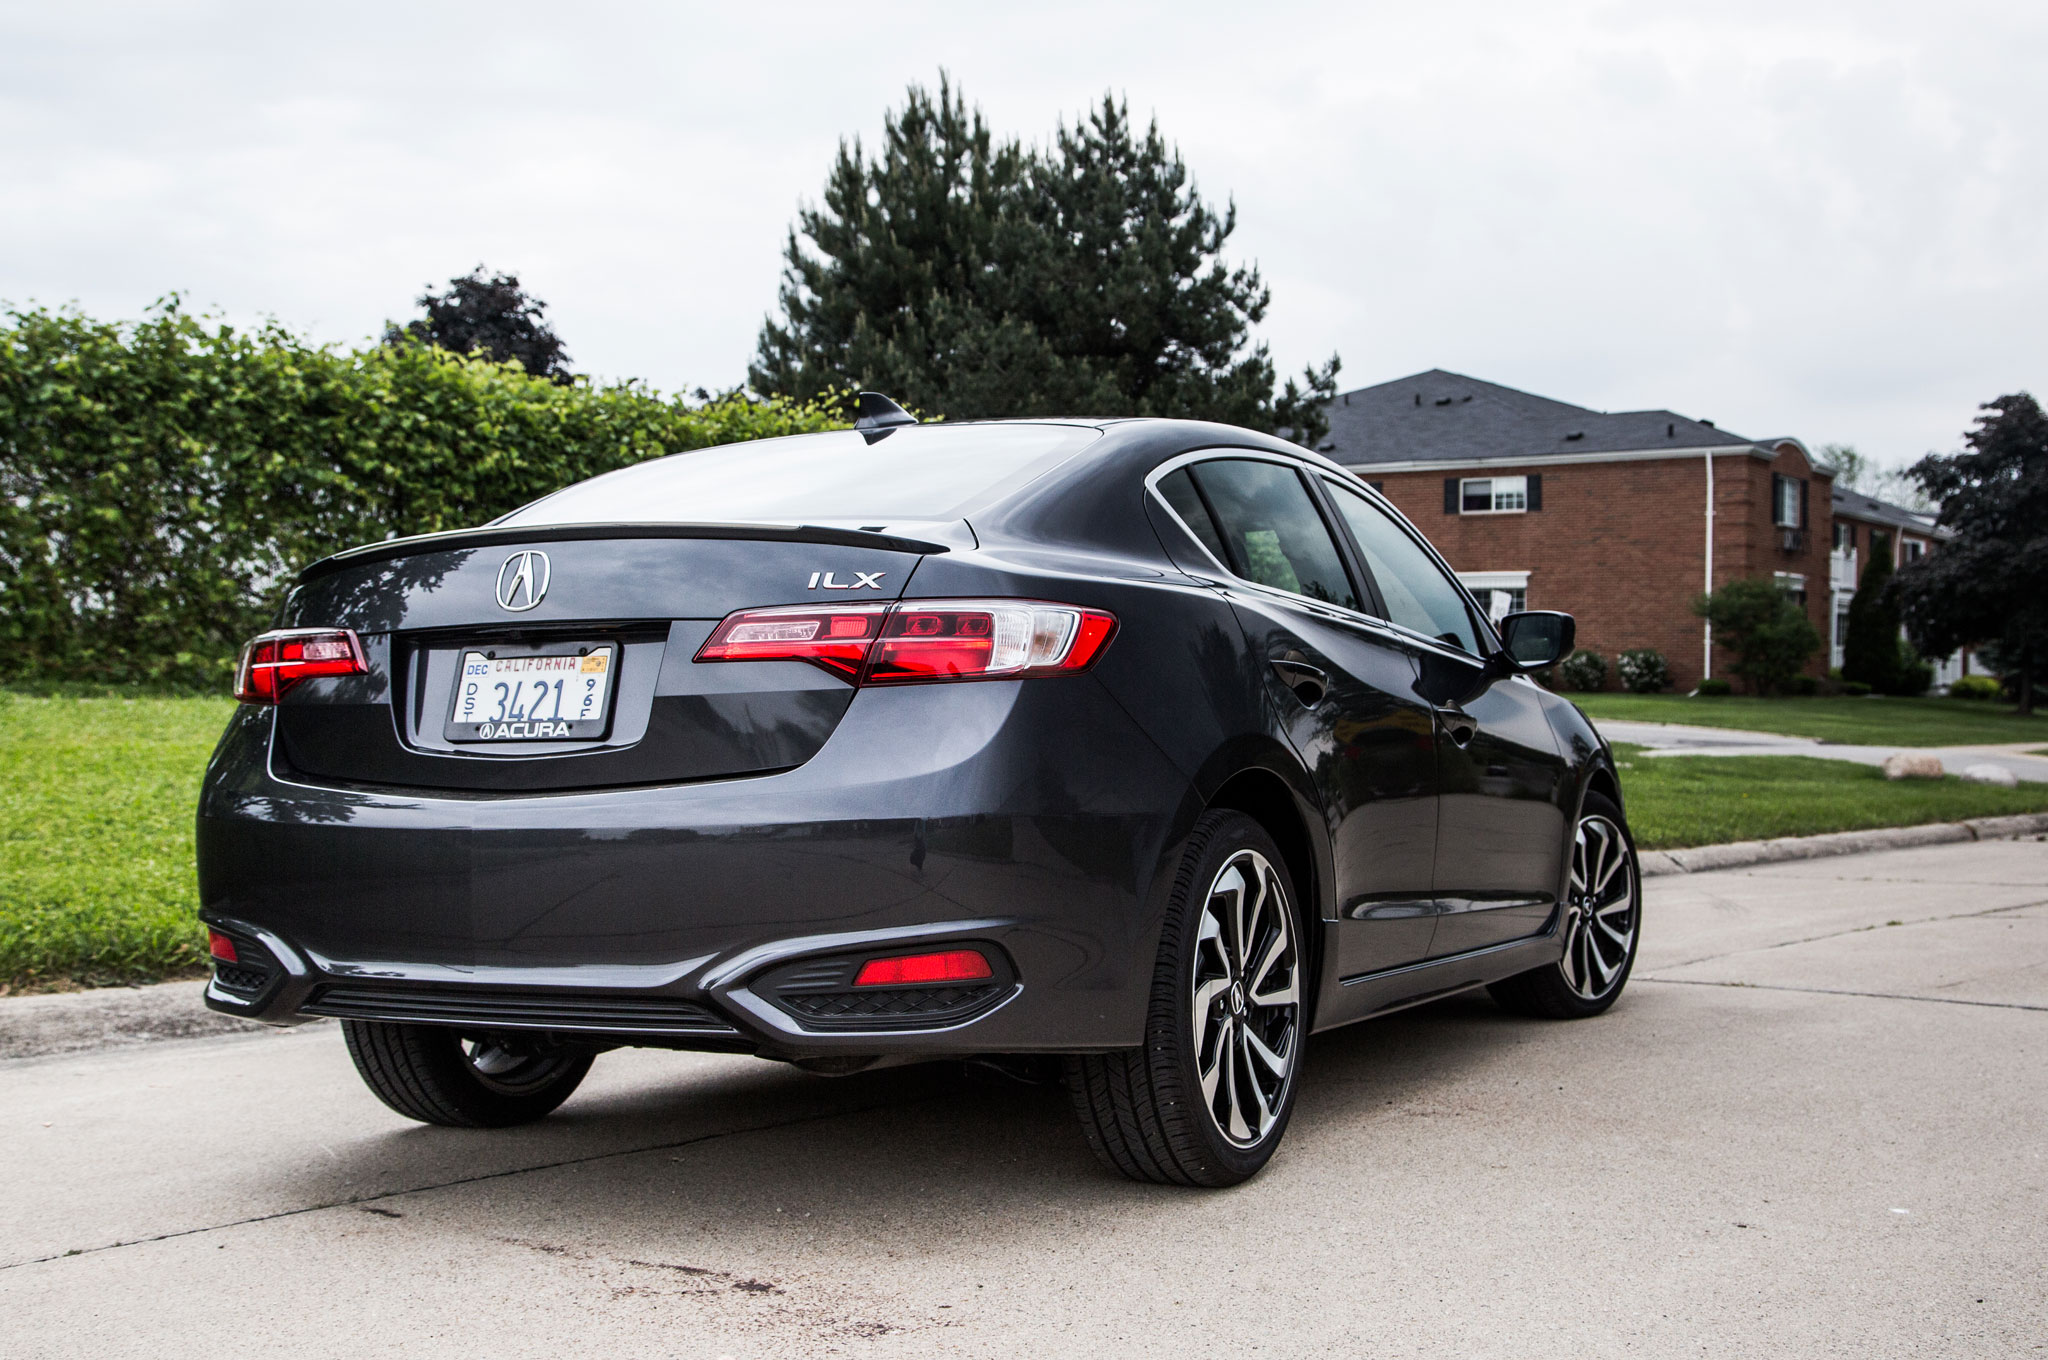 2016 Acura ILX A-Spec Second Drive Review